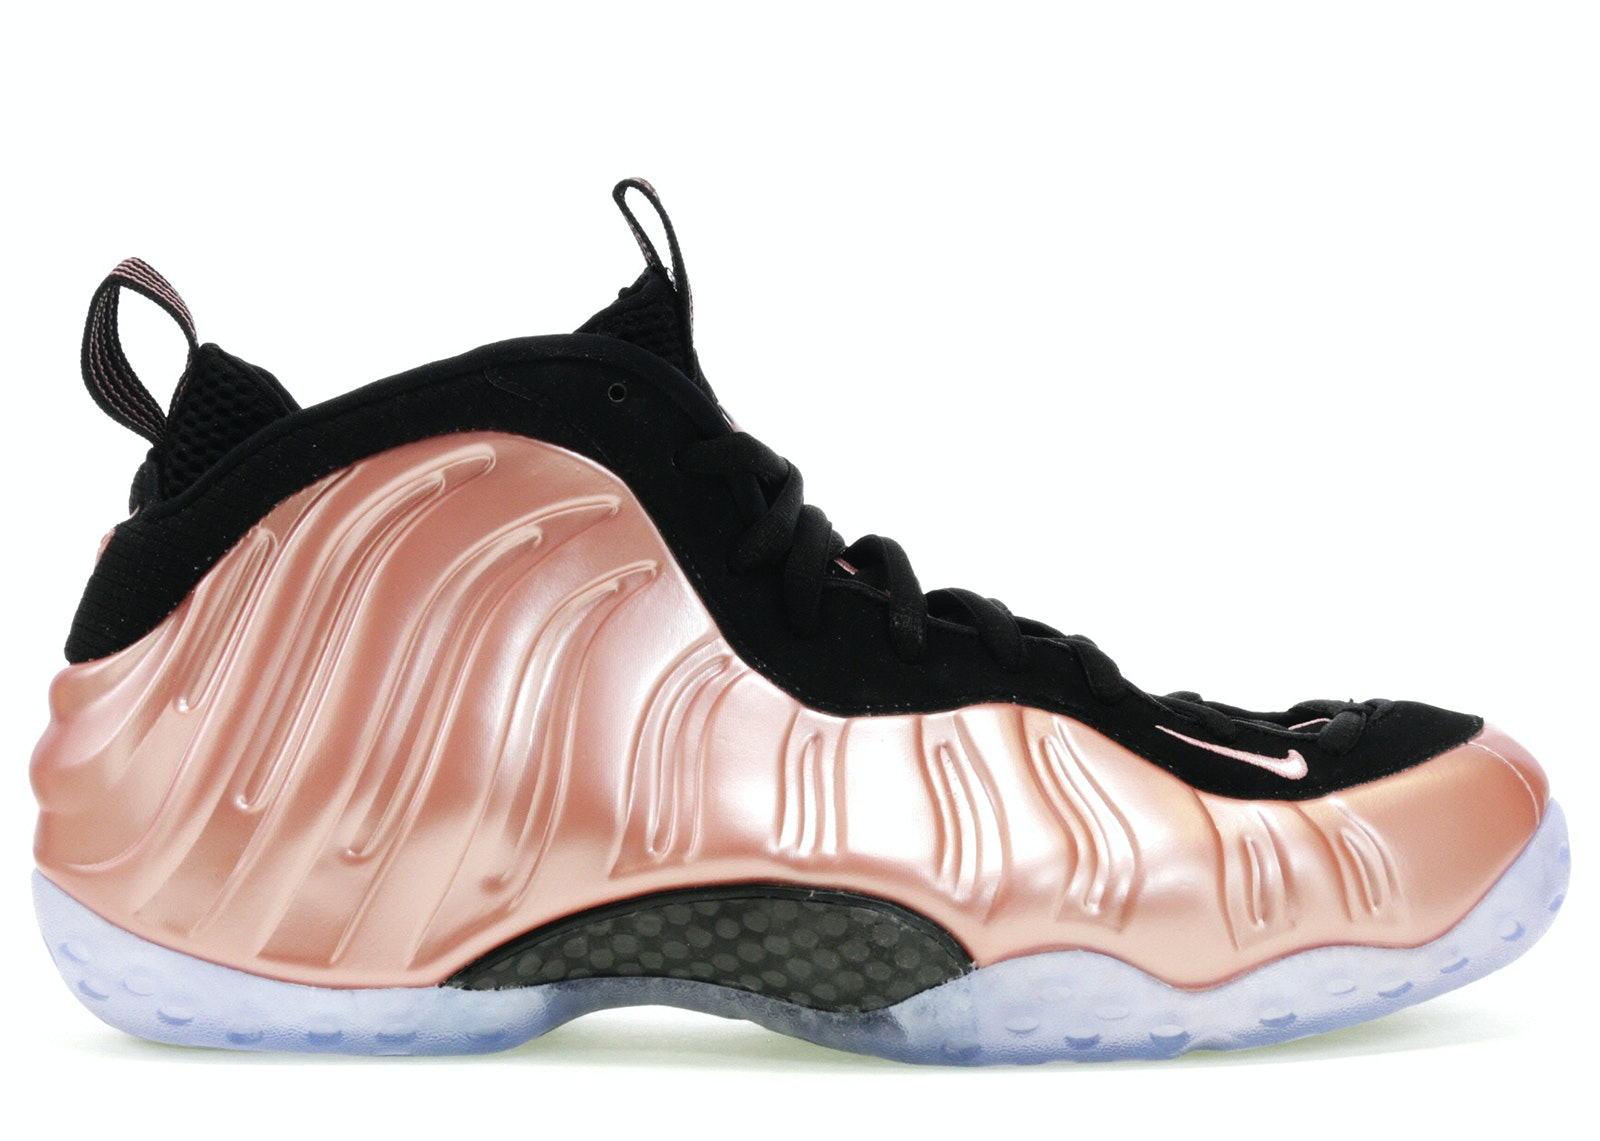 Air Foamposite One Rust Pink